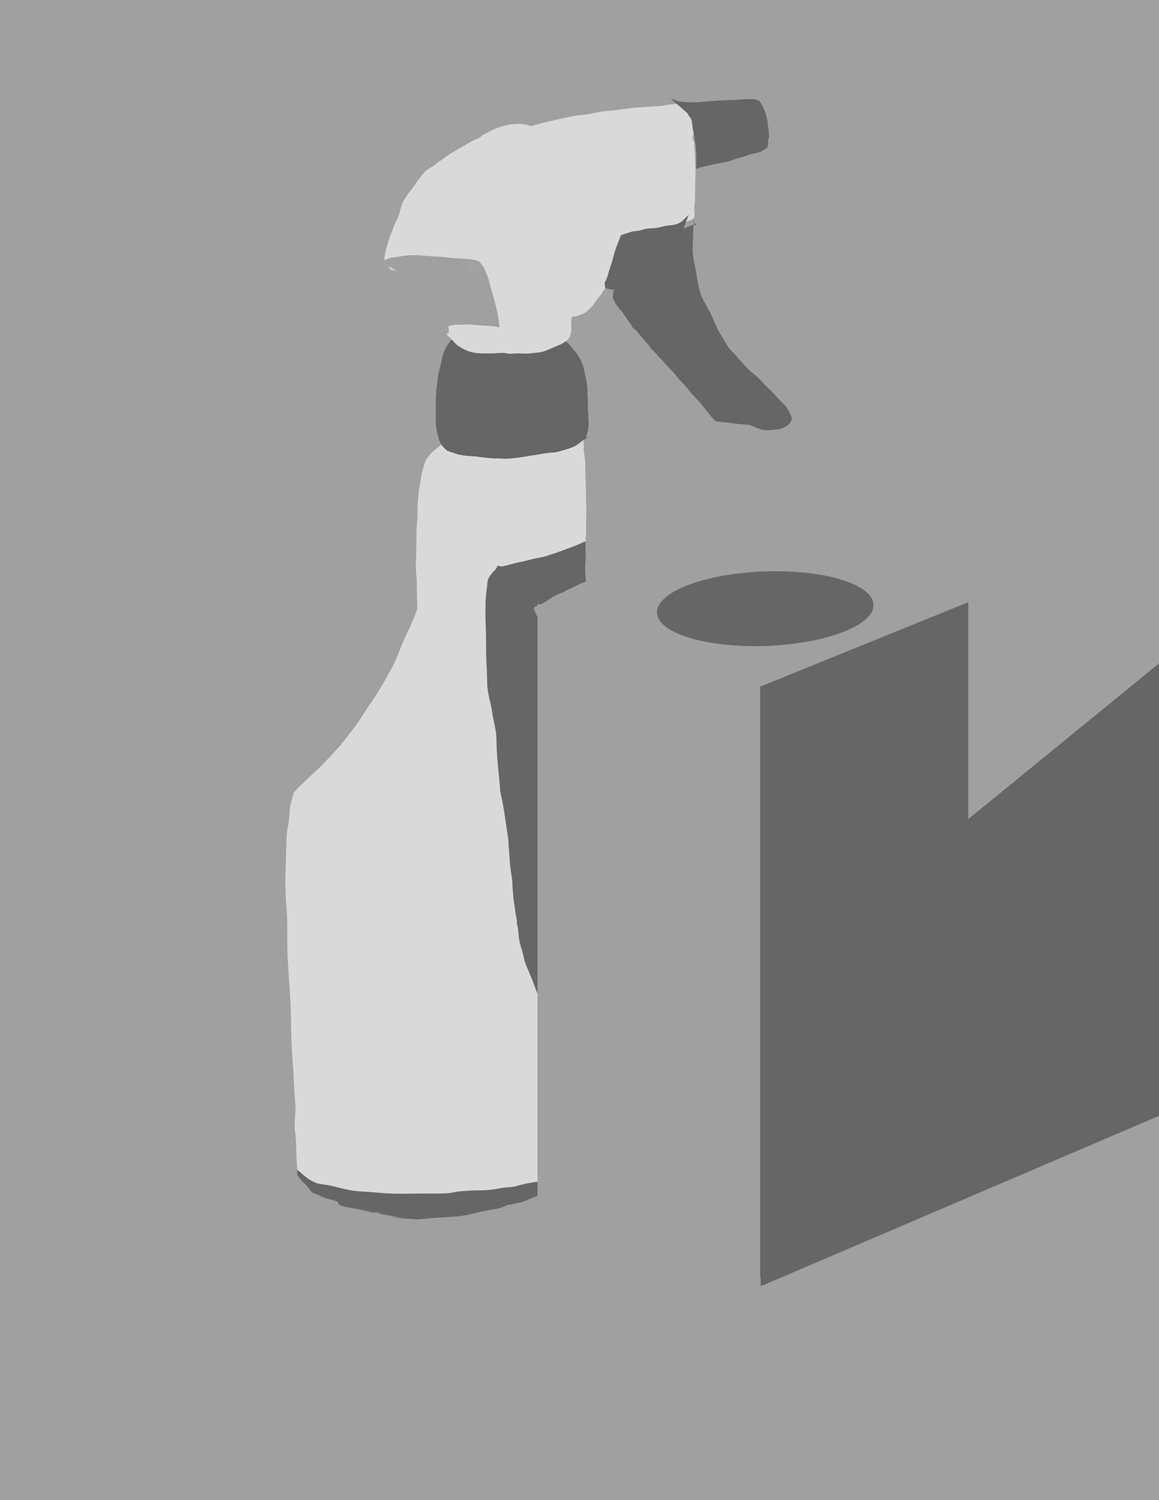 3-Spray-bottle-and-candlestick-3-value-study.png